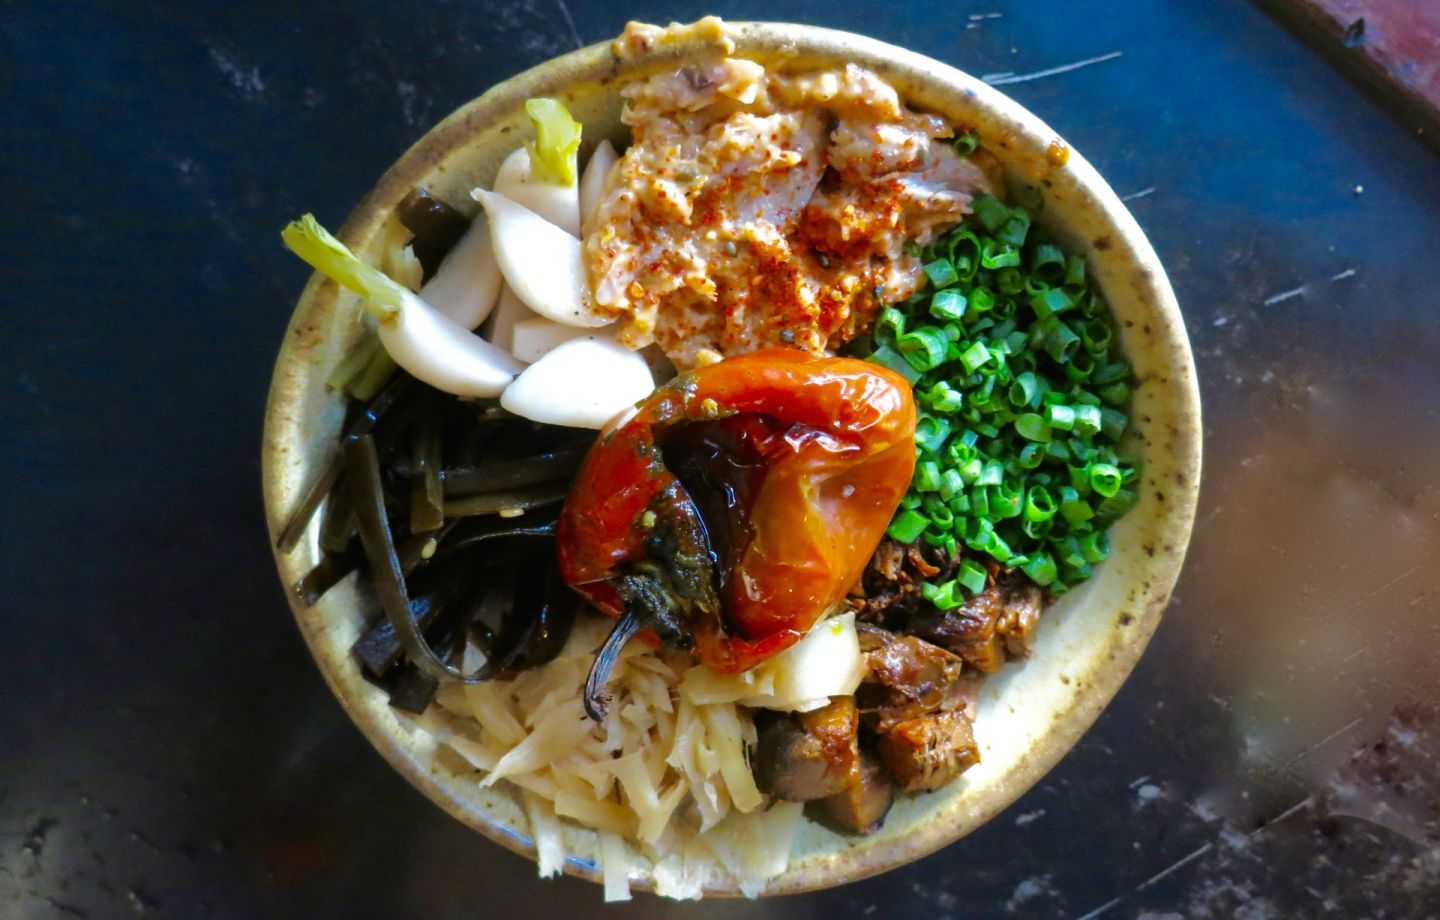 Rockridge's Ramen Shop features a special  donburi bowl that changes daily.   Jenny Oh